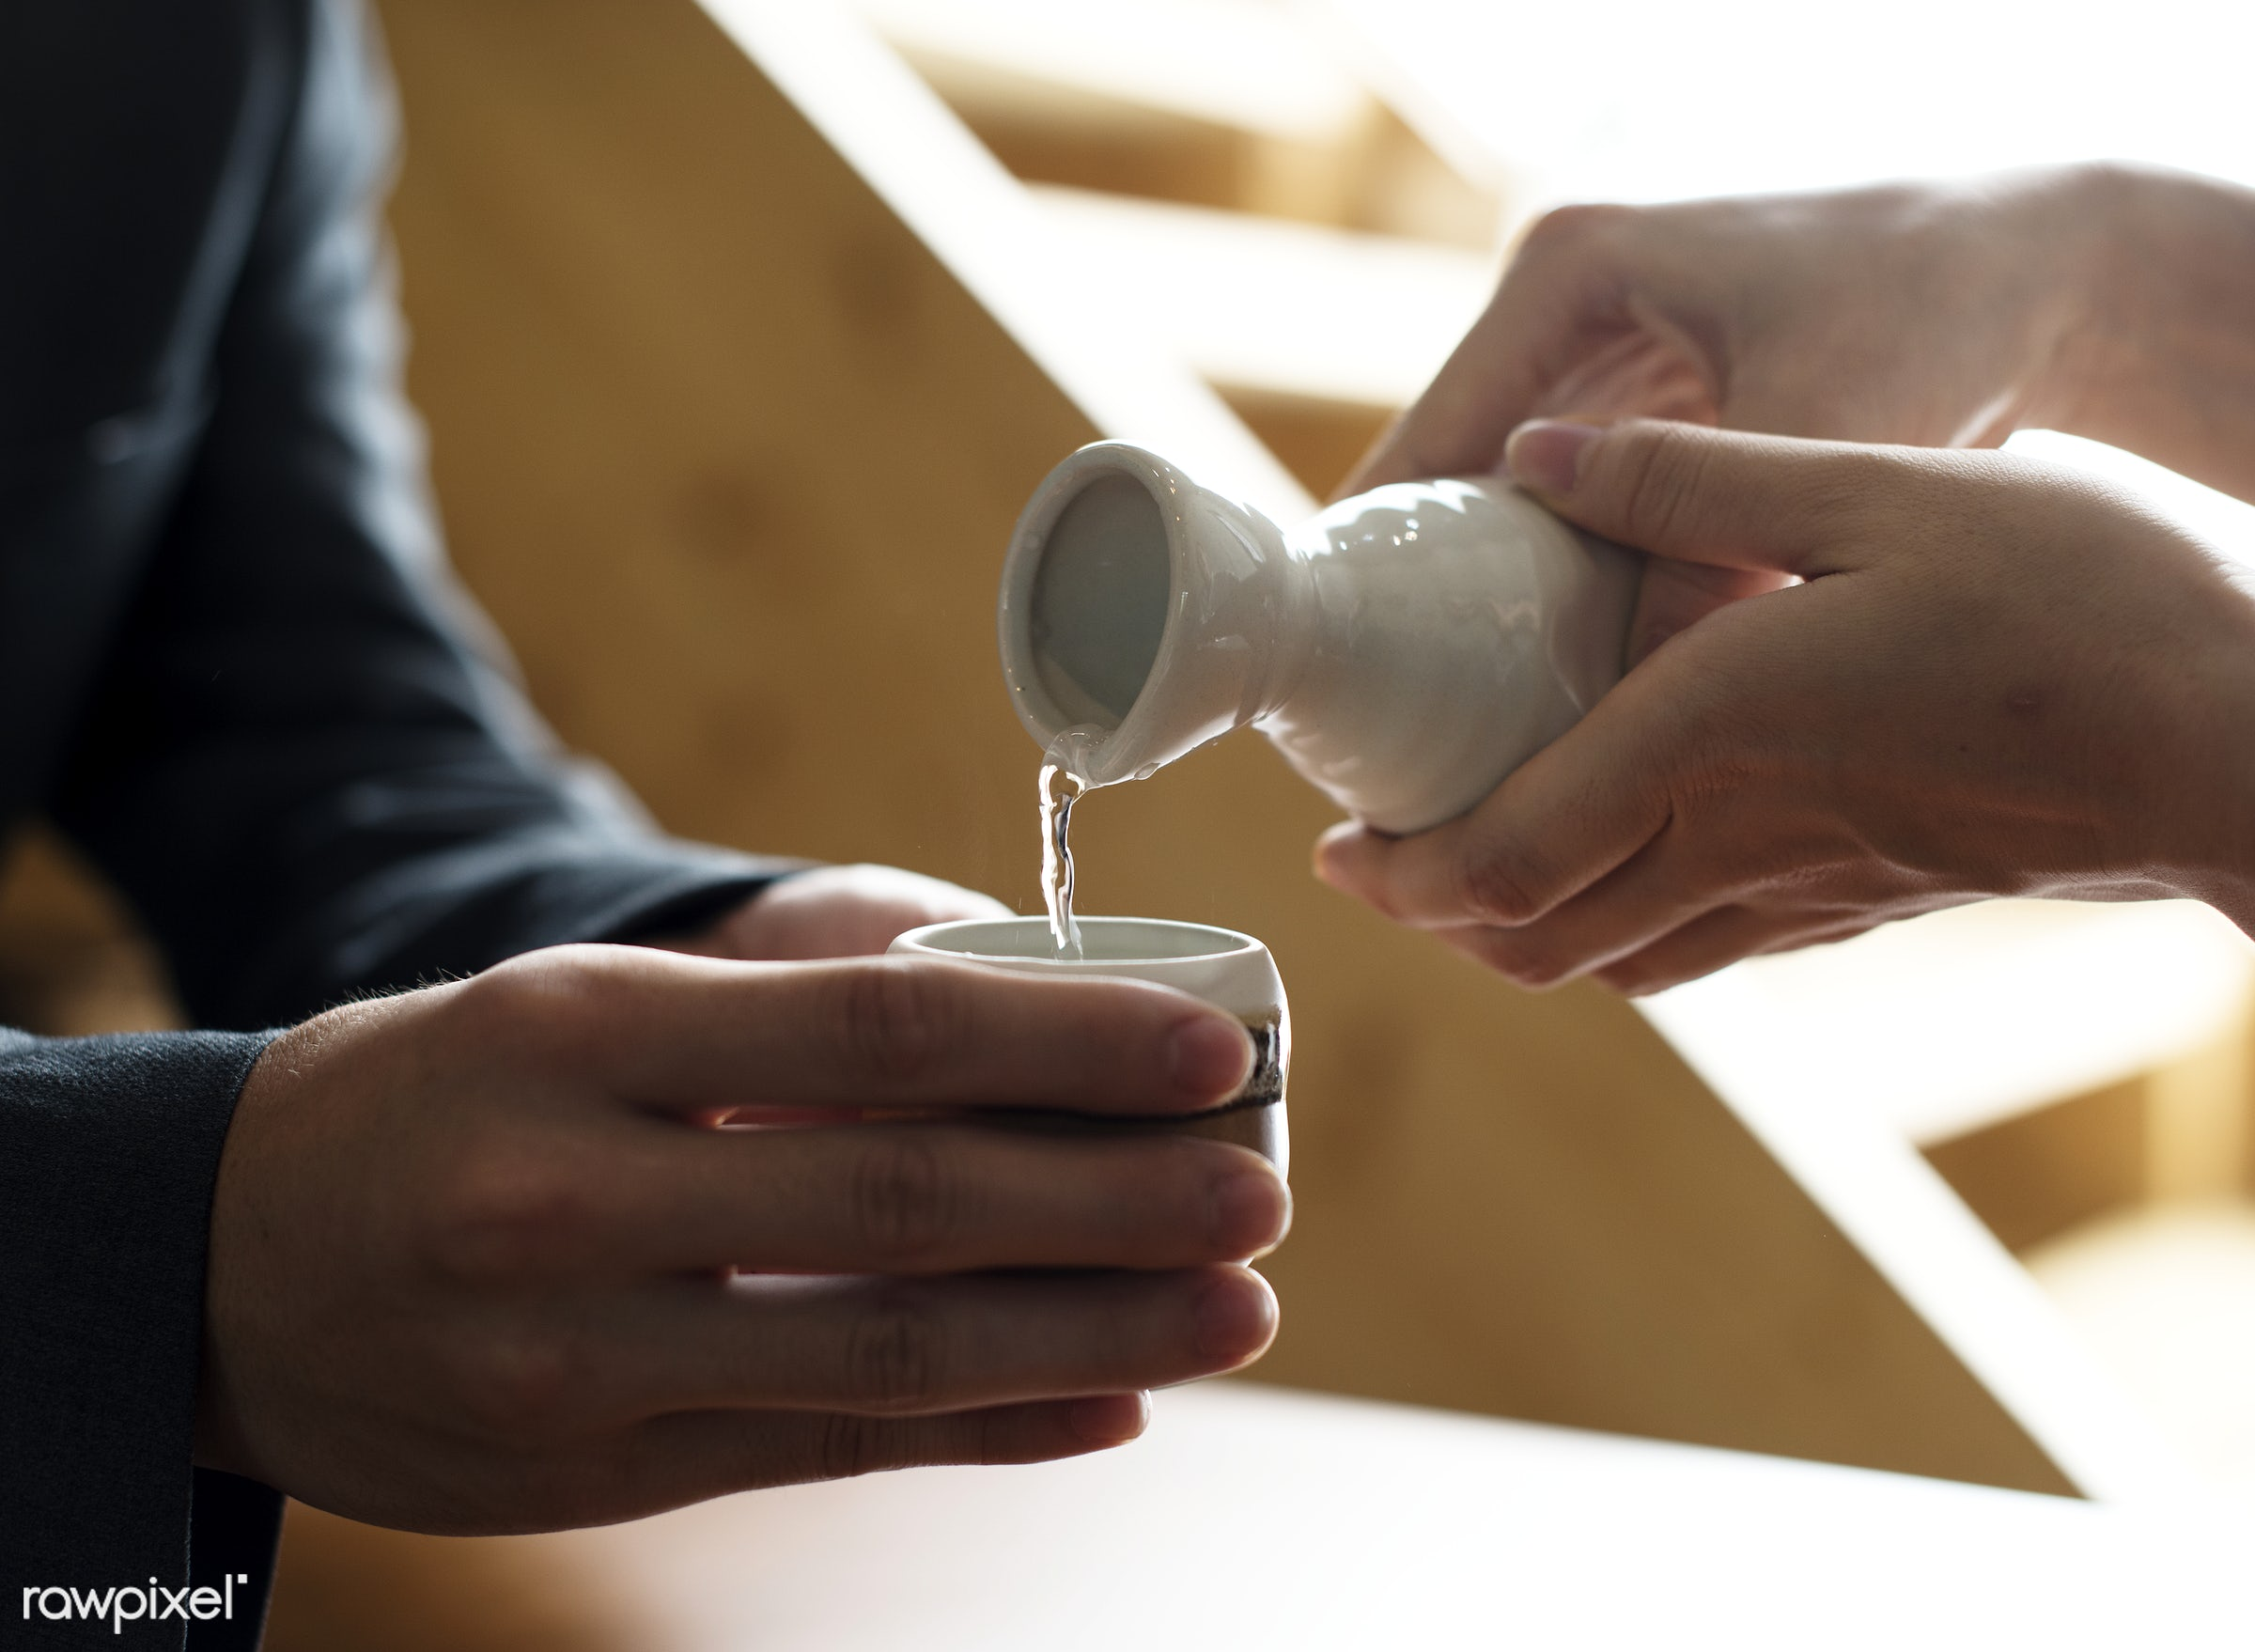 Pouring sake - japan, alcohol, asia, asian, culture, drinking, japanese, liquor, people, pouring, sake, socialize, tavern,...